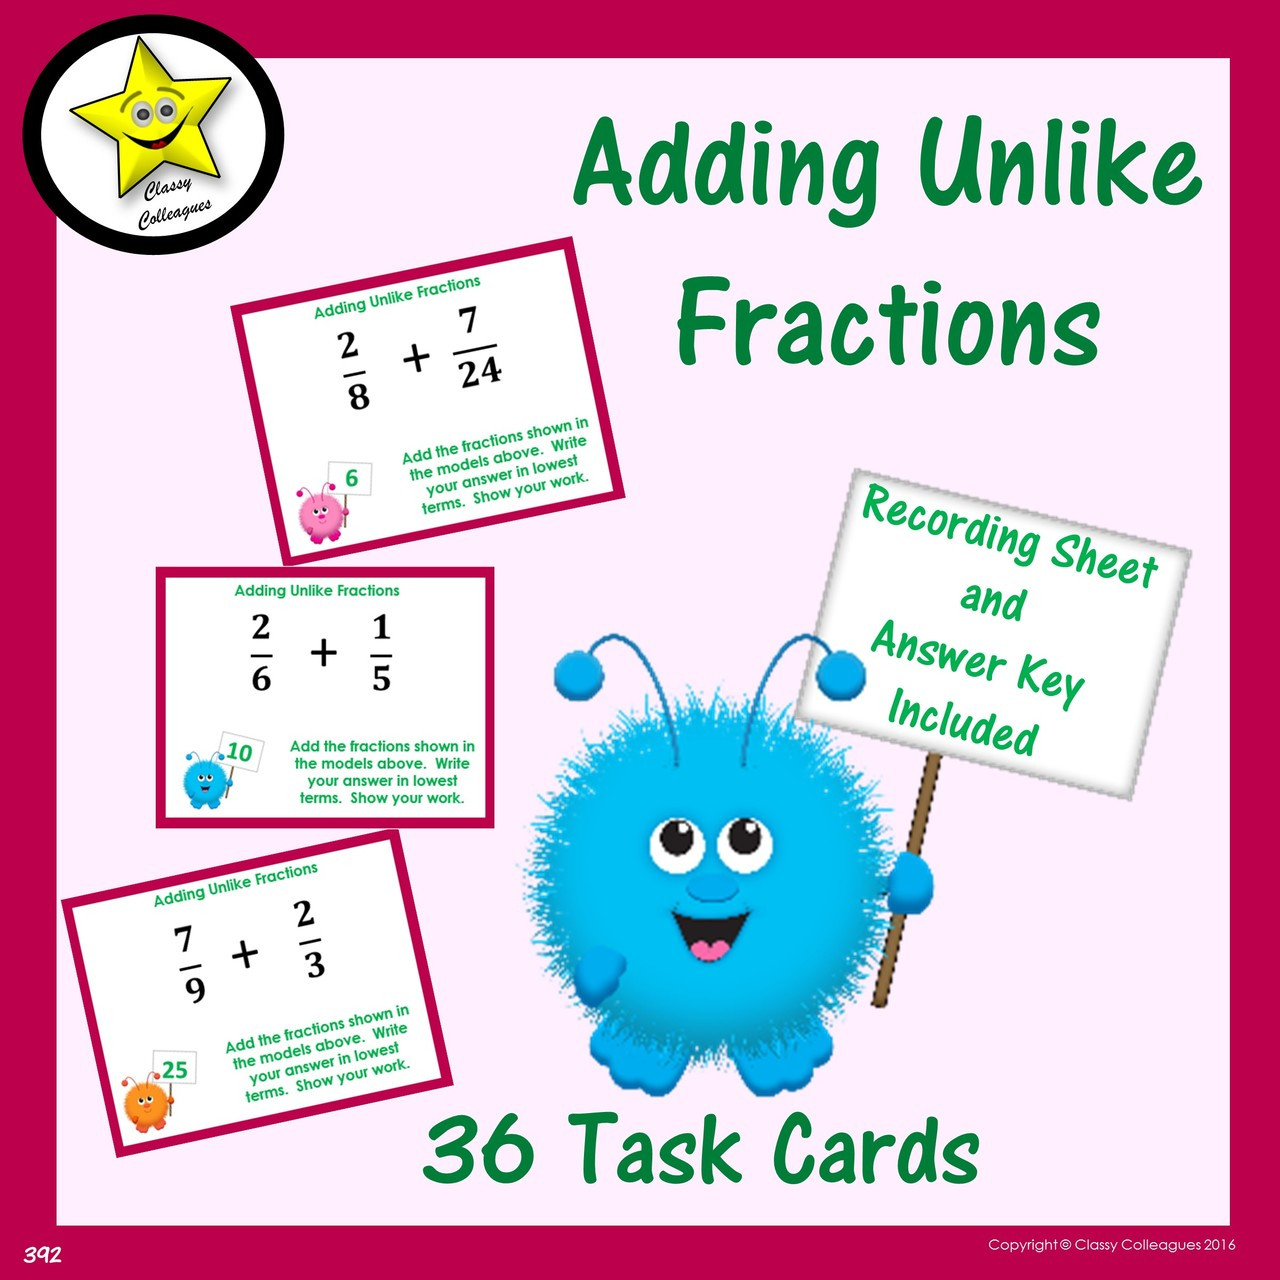 Adding Unlike Fractions (no models) Task Cards